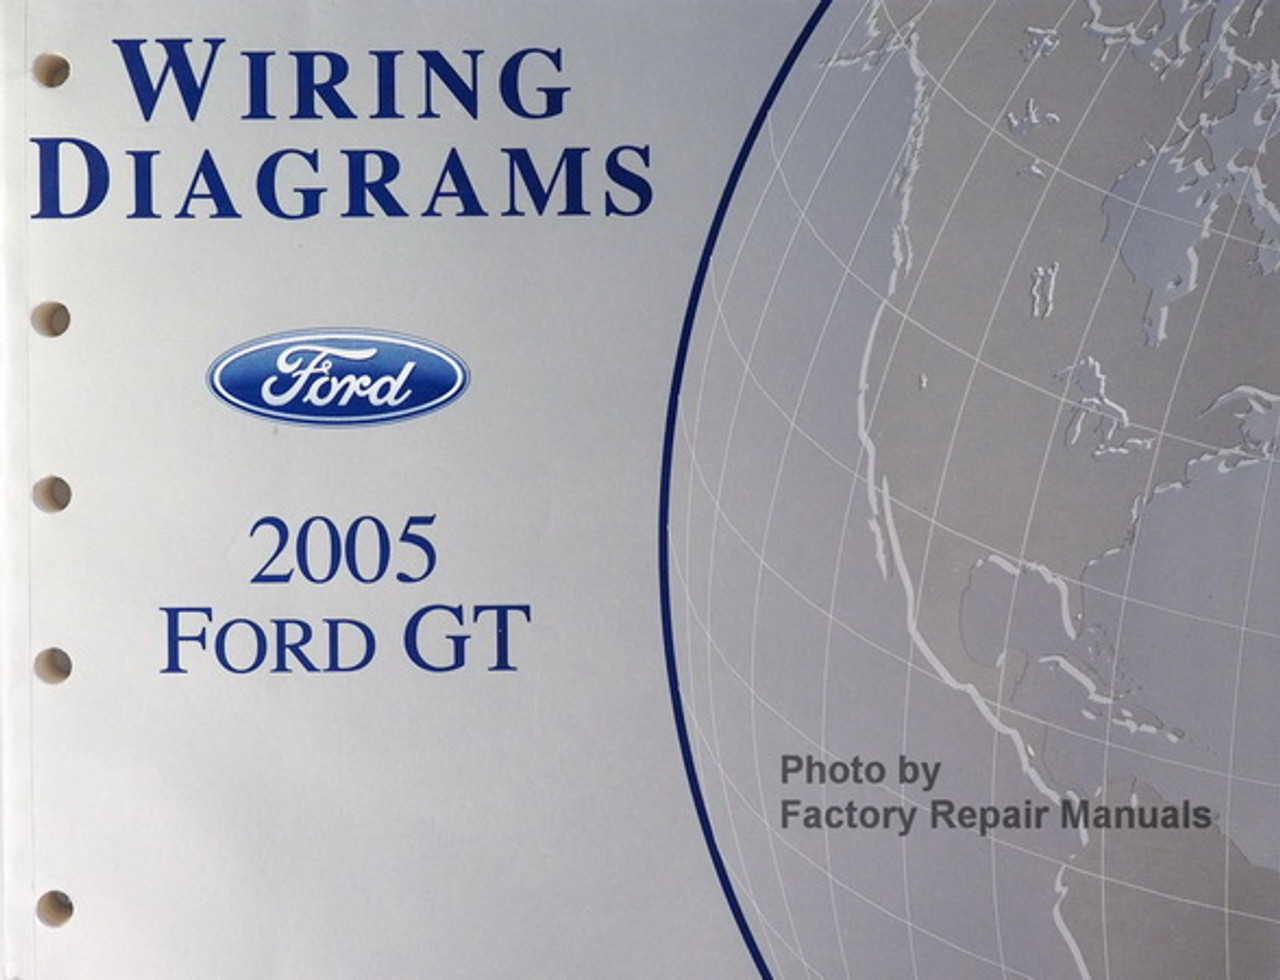 [SCHEMATICS_4CA]  2005 Ford GT Electrical Wiring Diagrams Original Manual - Factory Repair  Manuals | 2005 Ford 5 4 Engine Wire Harness Diagram |  | Factory Repair Manuals